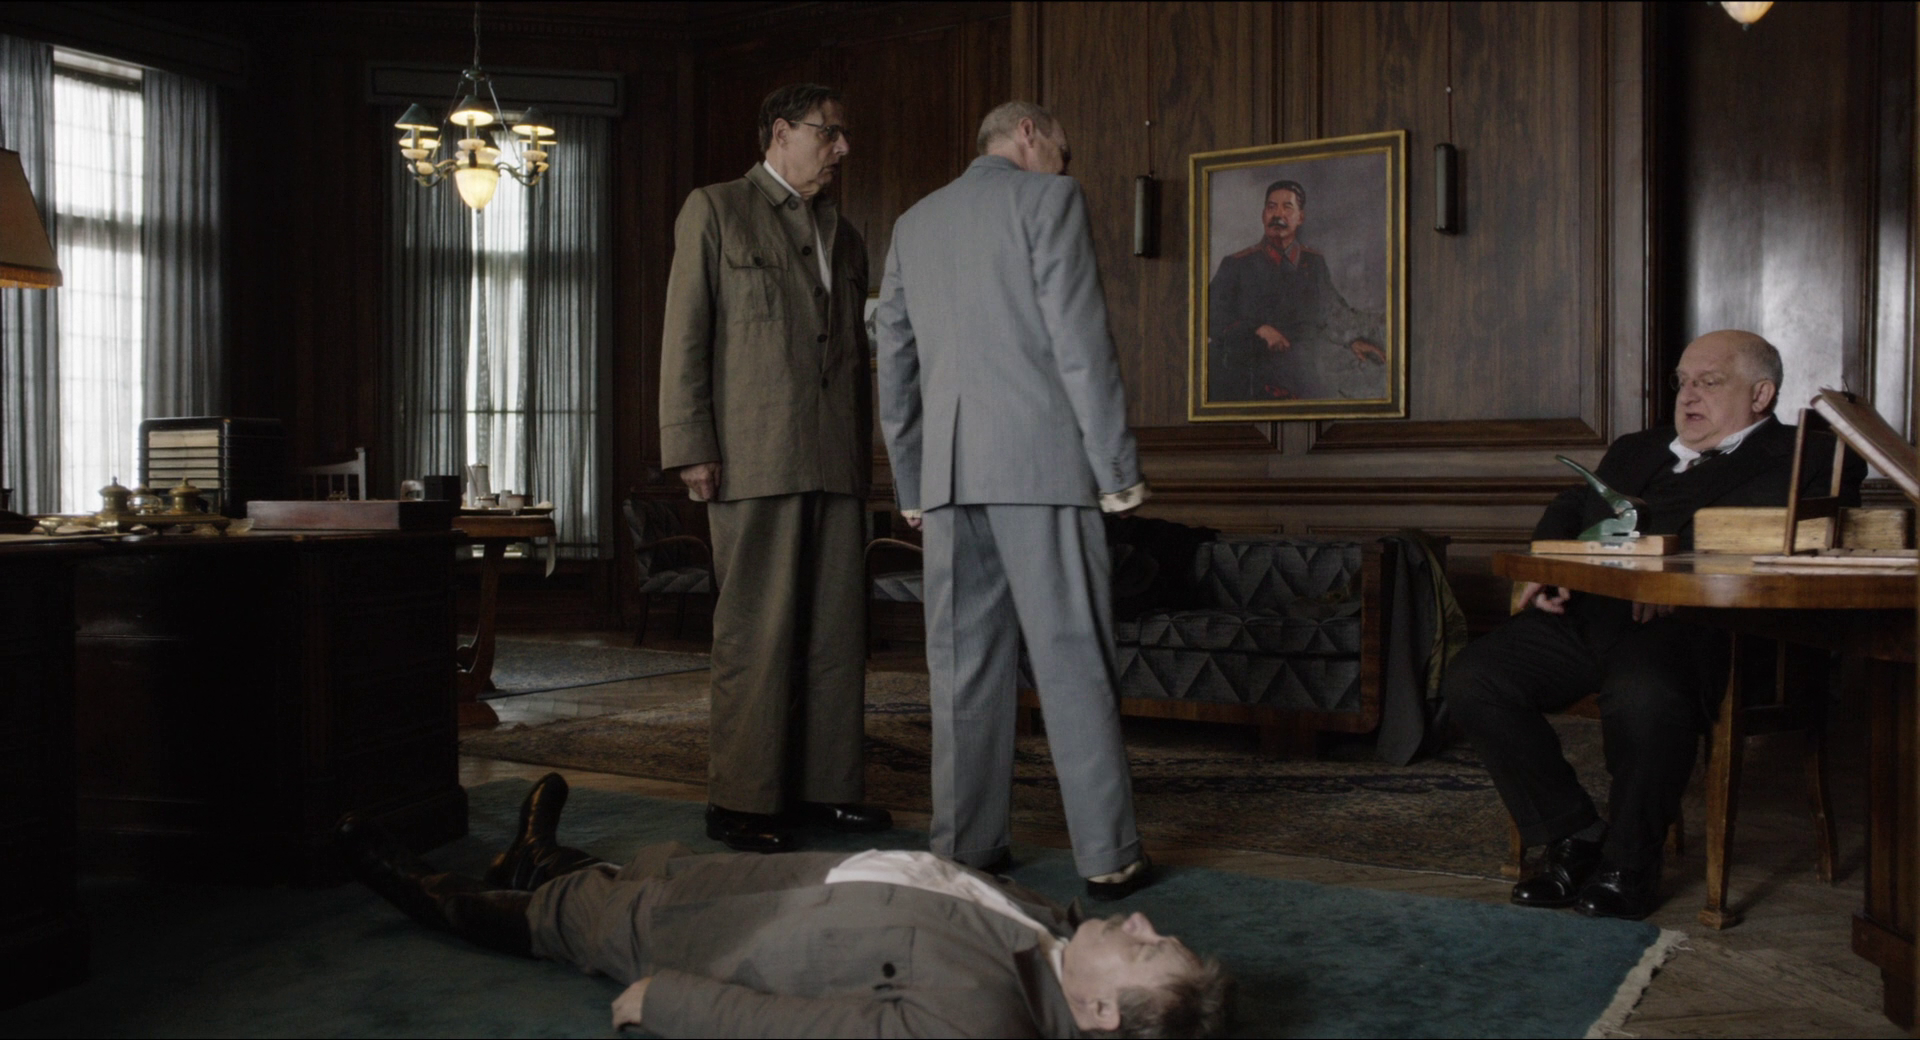 Adrian McLoughlin as Stalin, Jeffrey Tambor as Malenkov, Steve Buscemi as Khrushchev, and Simon Russell Beale as Beria in  The Death of Stalin